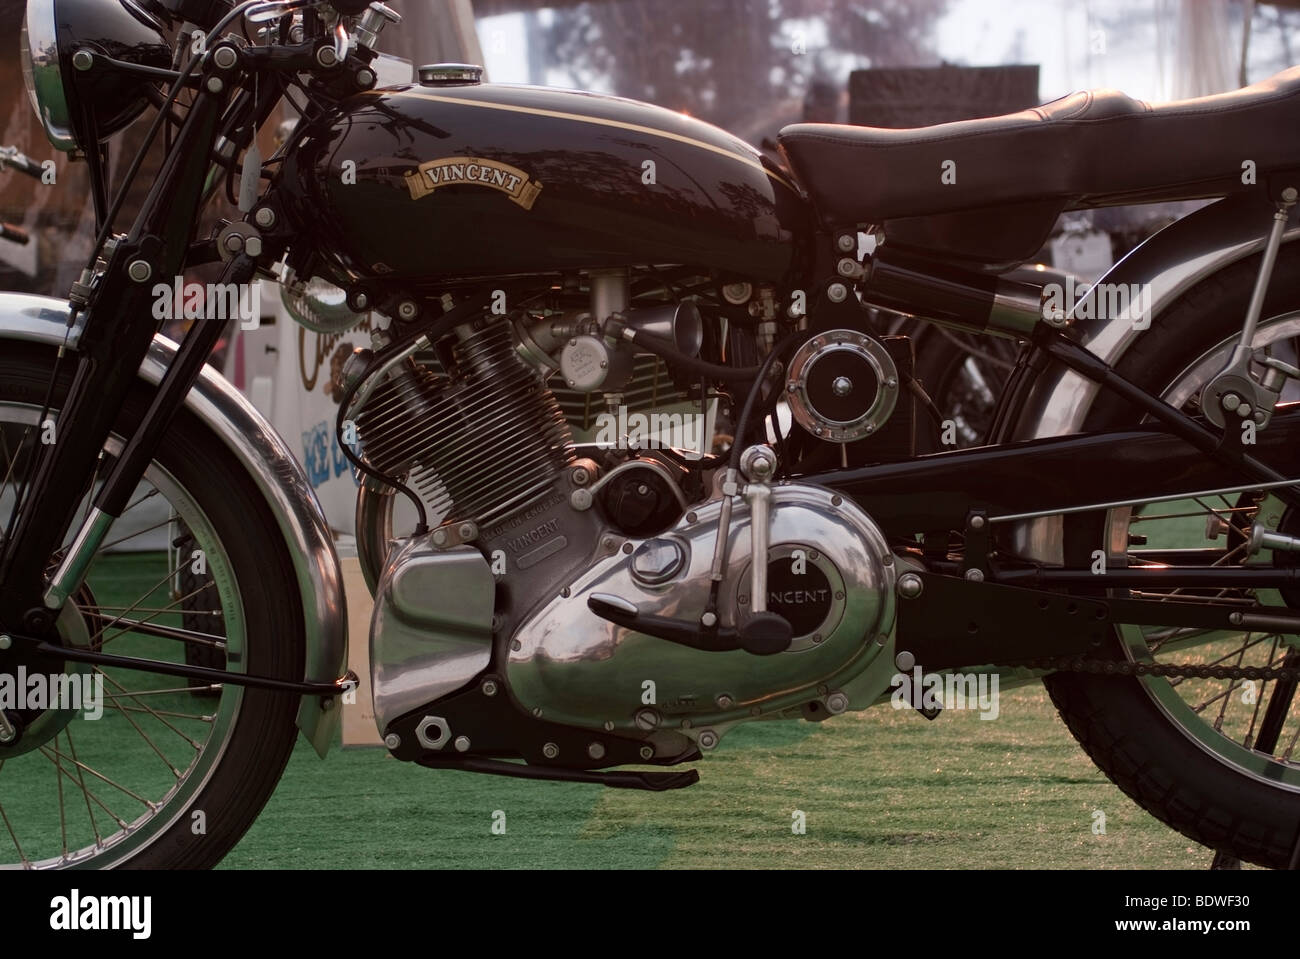 1950 Vincent Comet Series C Motorcycle on display at the 2009 Pebble Beach Concours d'Elegance - Stock Image